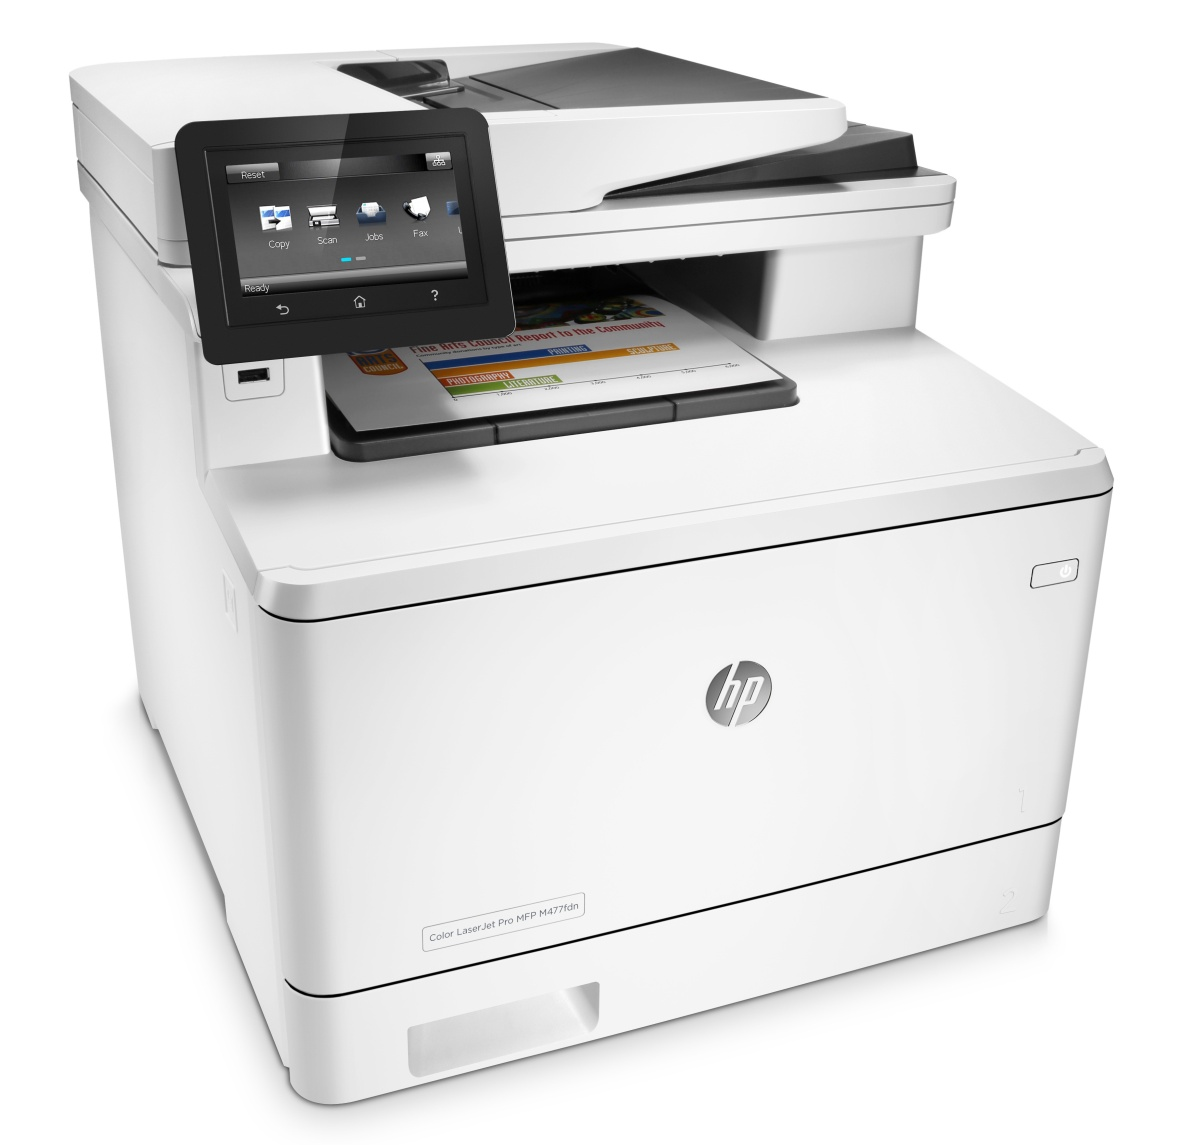 HP CLJ Pro MFP Color M477fdn (A4, 27/27ppm, USB 2.0, Ethernet, Print/Scan/Copy/Fax, Duplex)